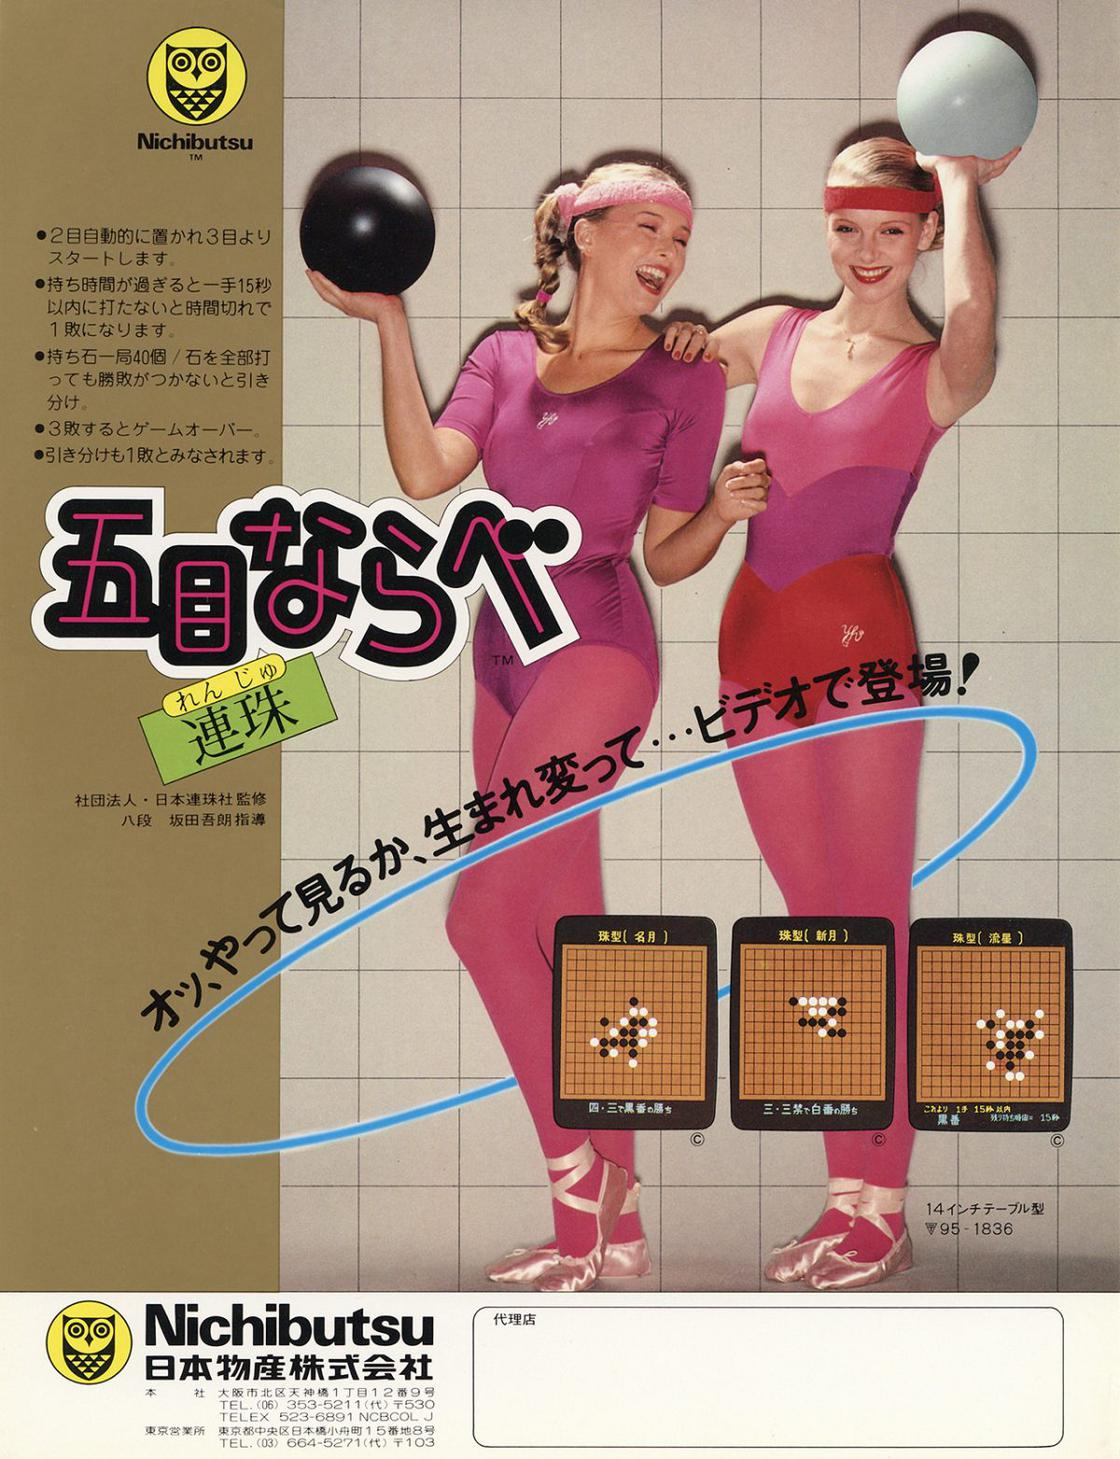 publicites-japonaises-jeux-video-1980-5.jpg